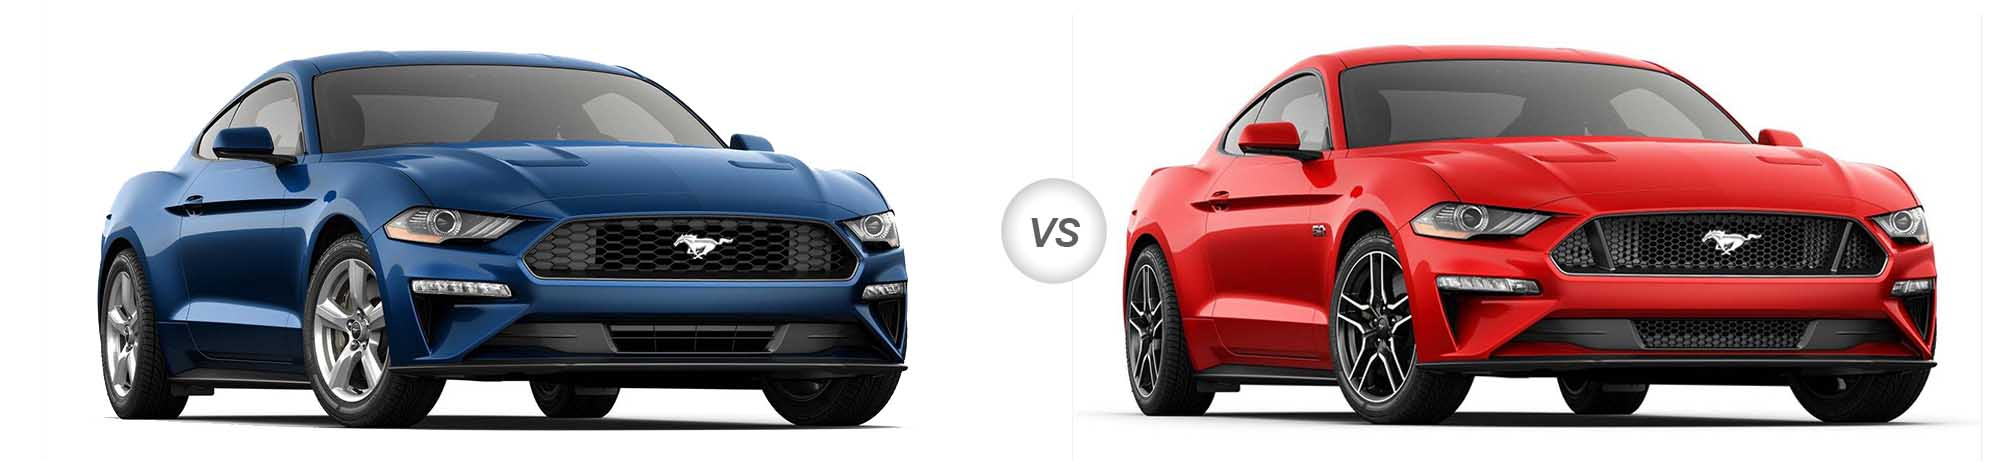 2018 Ford Mustang EcoBoost vs 2018 Ford Mustang GT